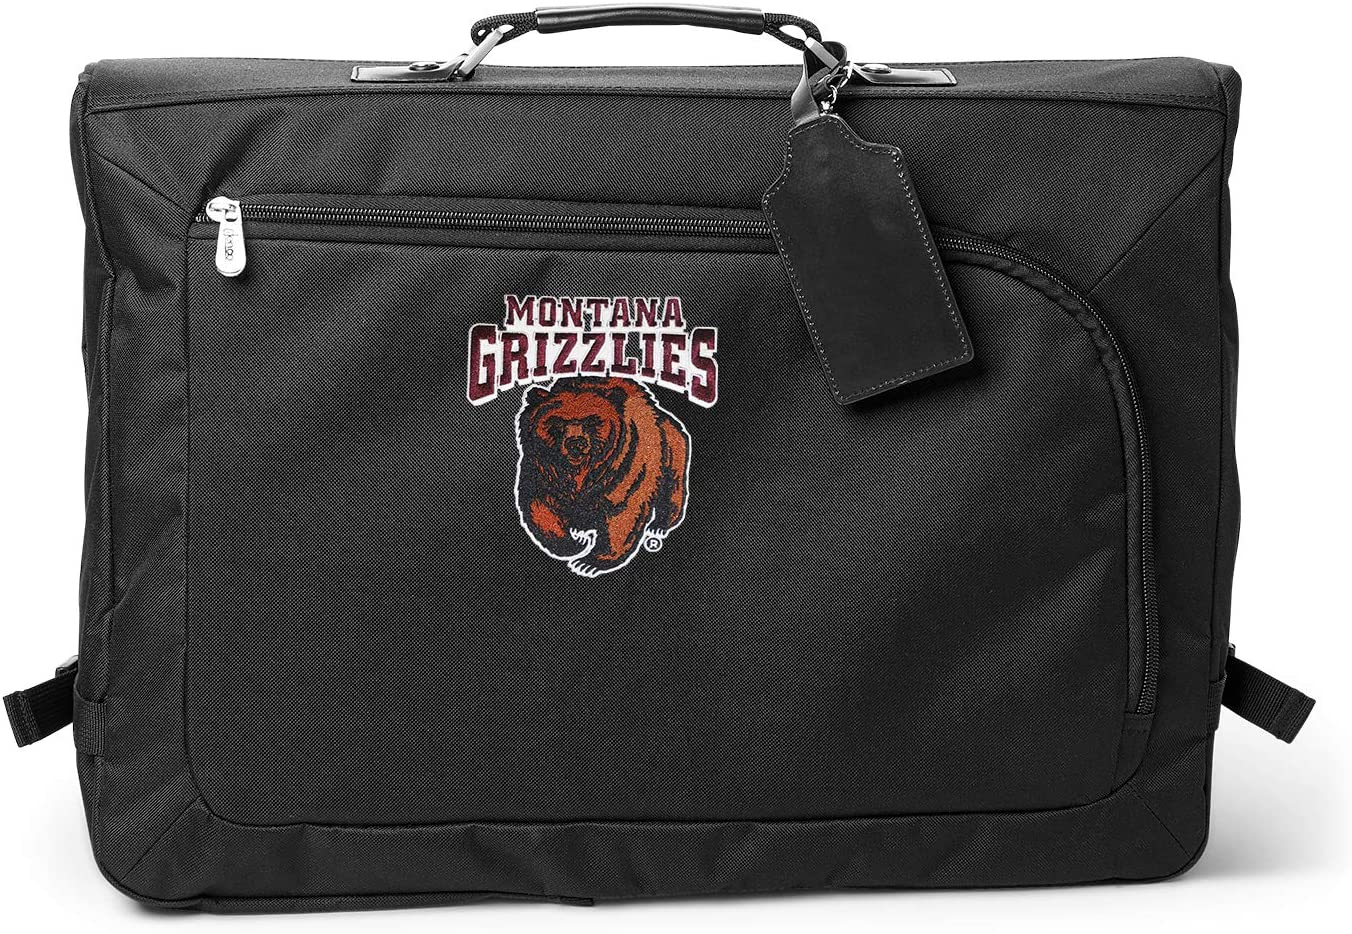 Denco NCAA Montana Grizzlies Carry-On Garment Bag 18-inches